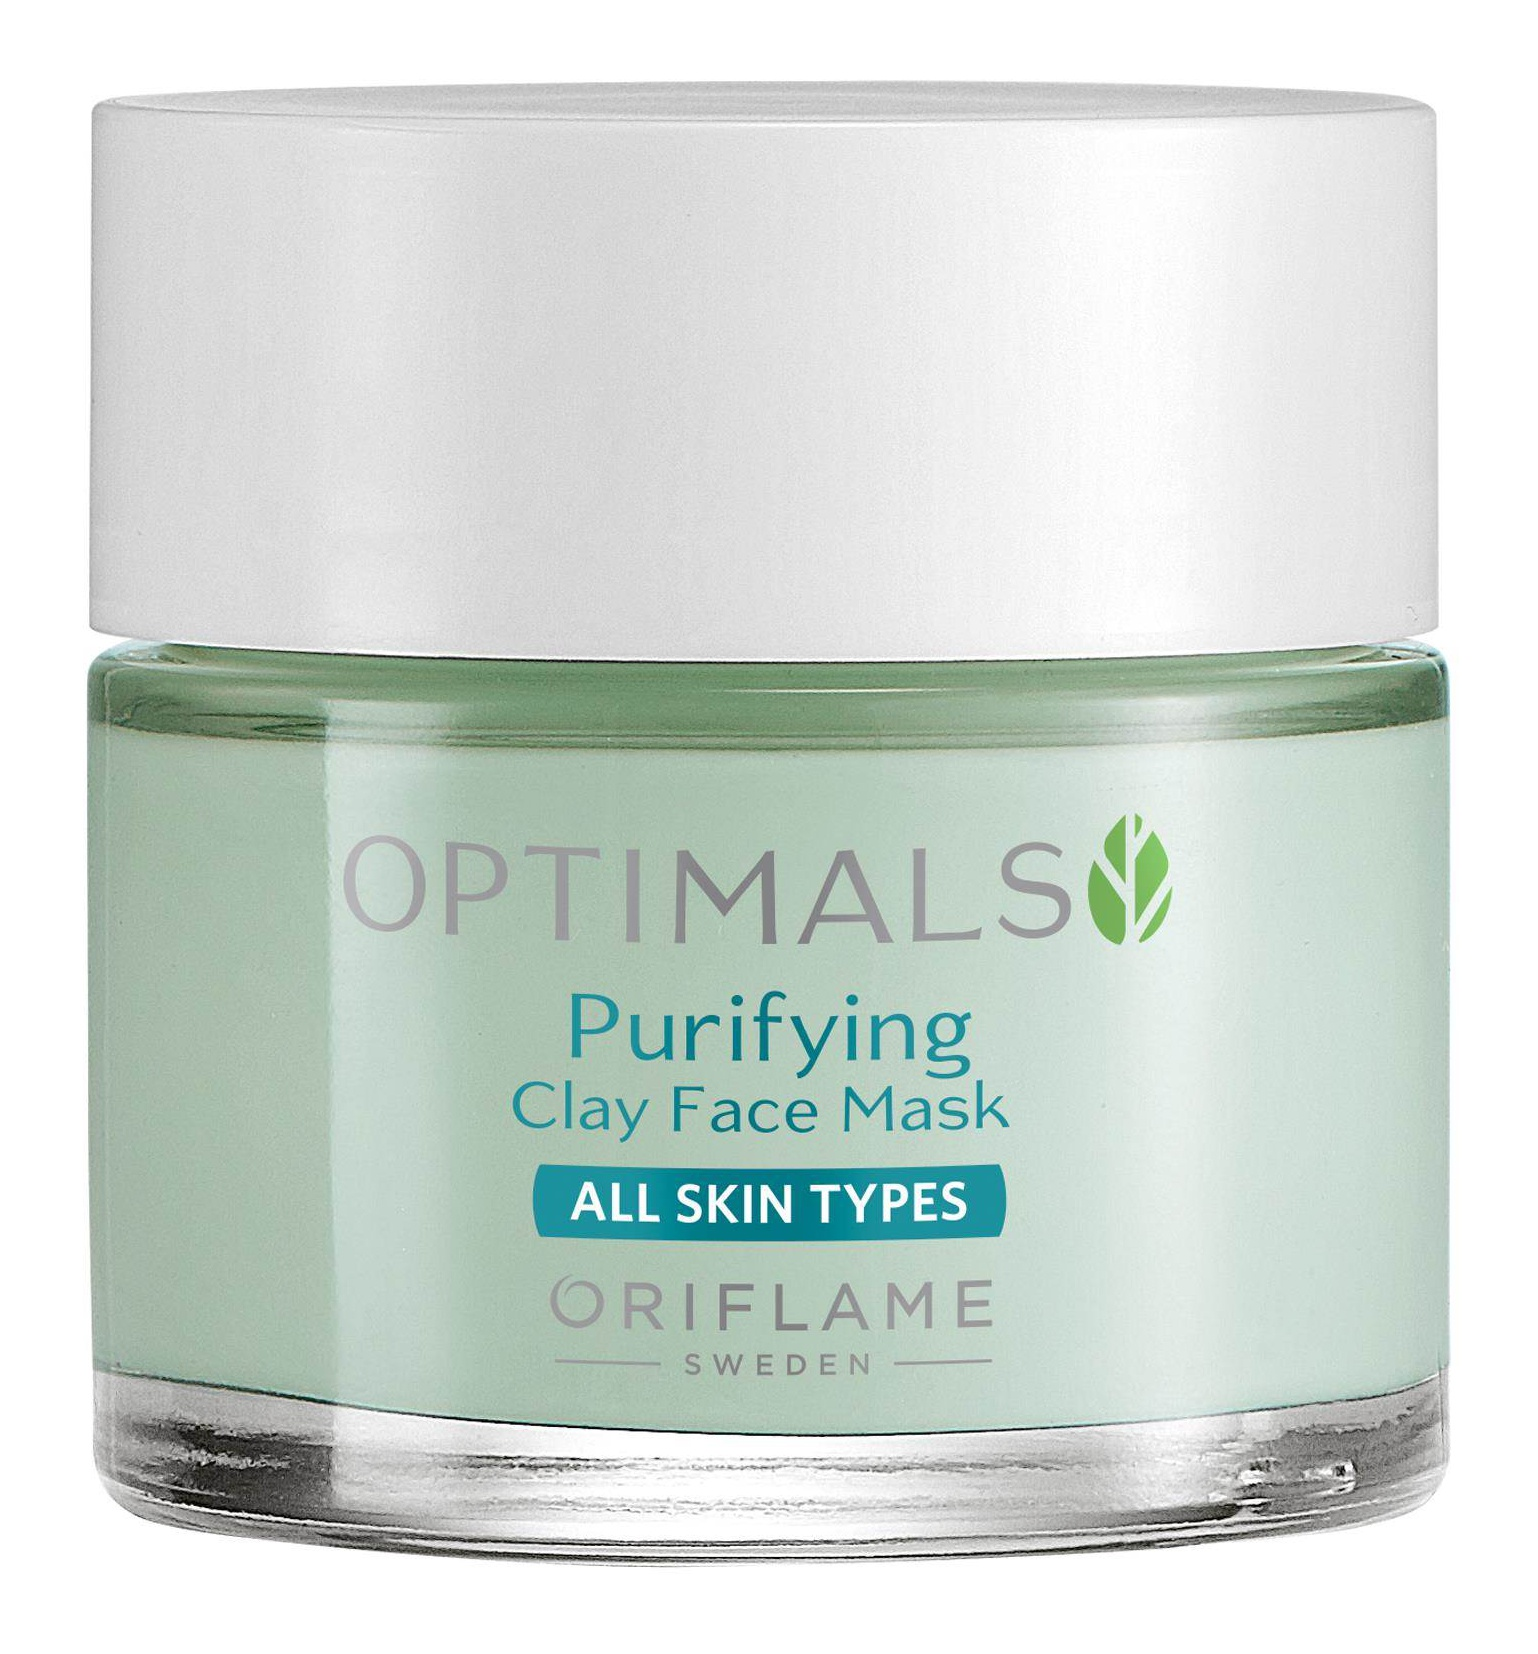 Oriflame Optimals Purifying Clay Face Mask